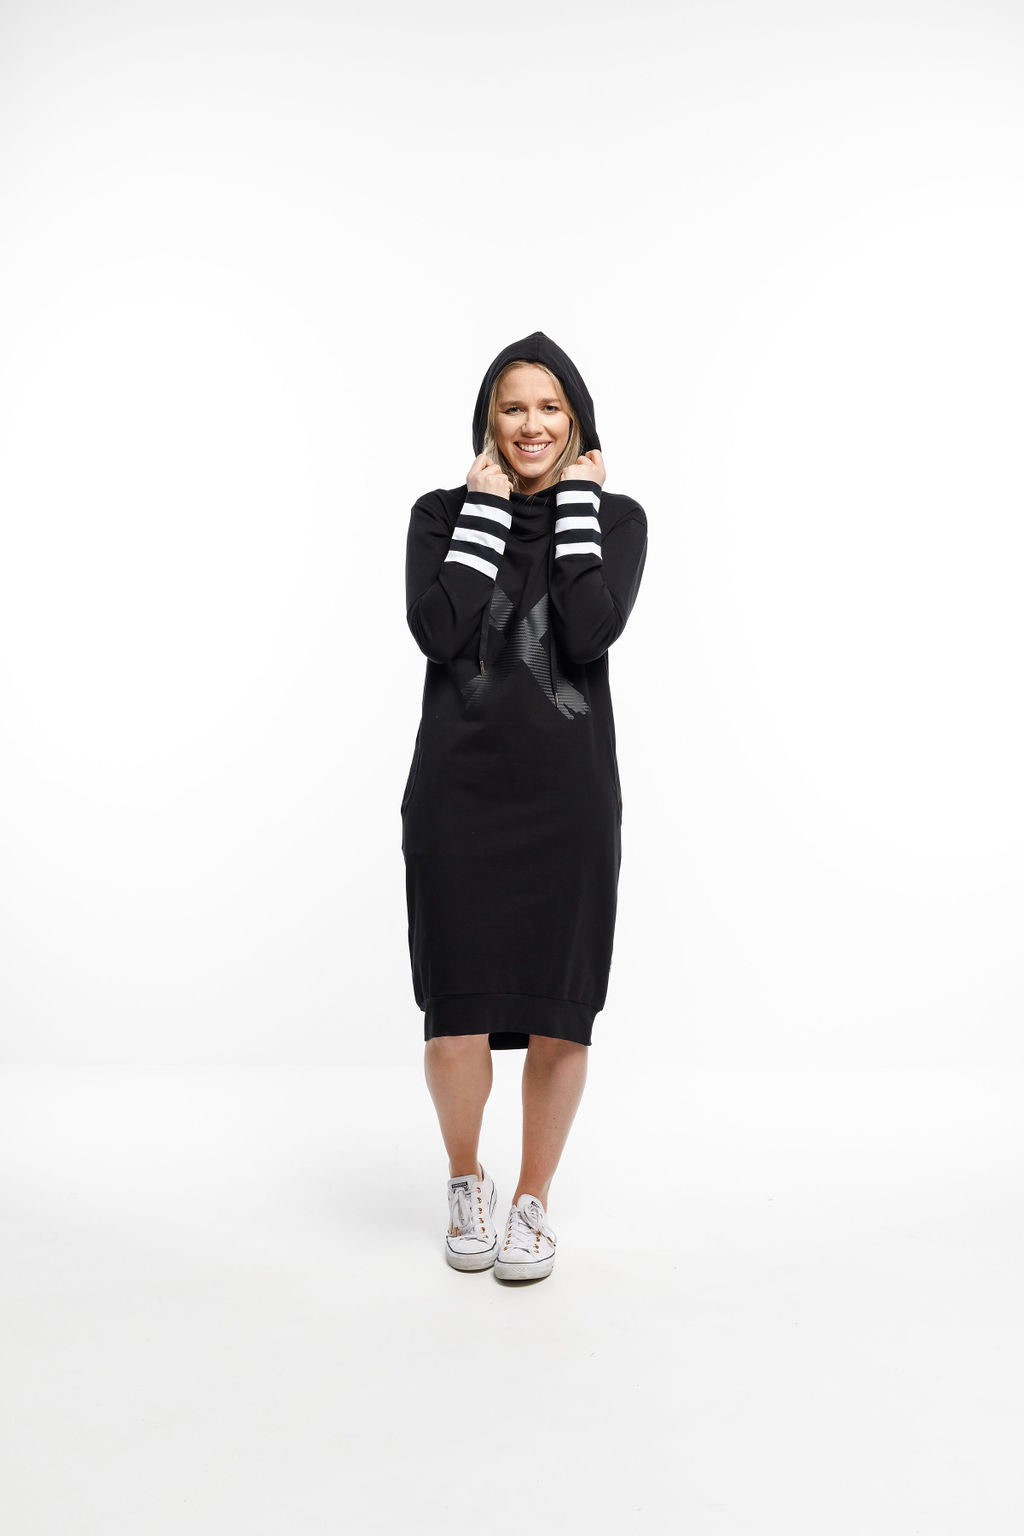 HOODED SWEATER DRESS - Black with Stripe cuffs and Black X